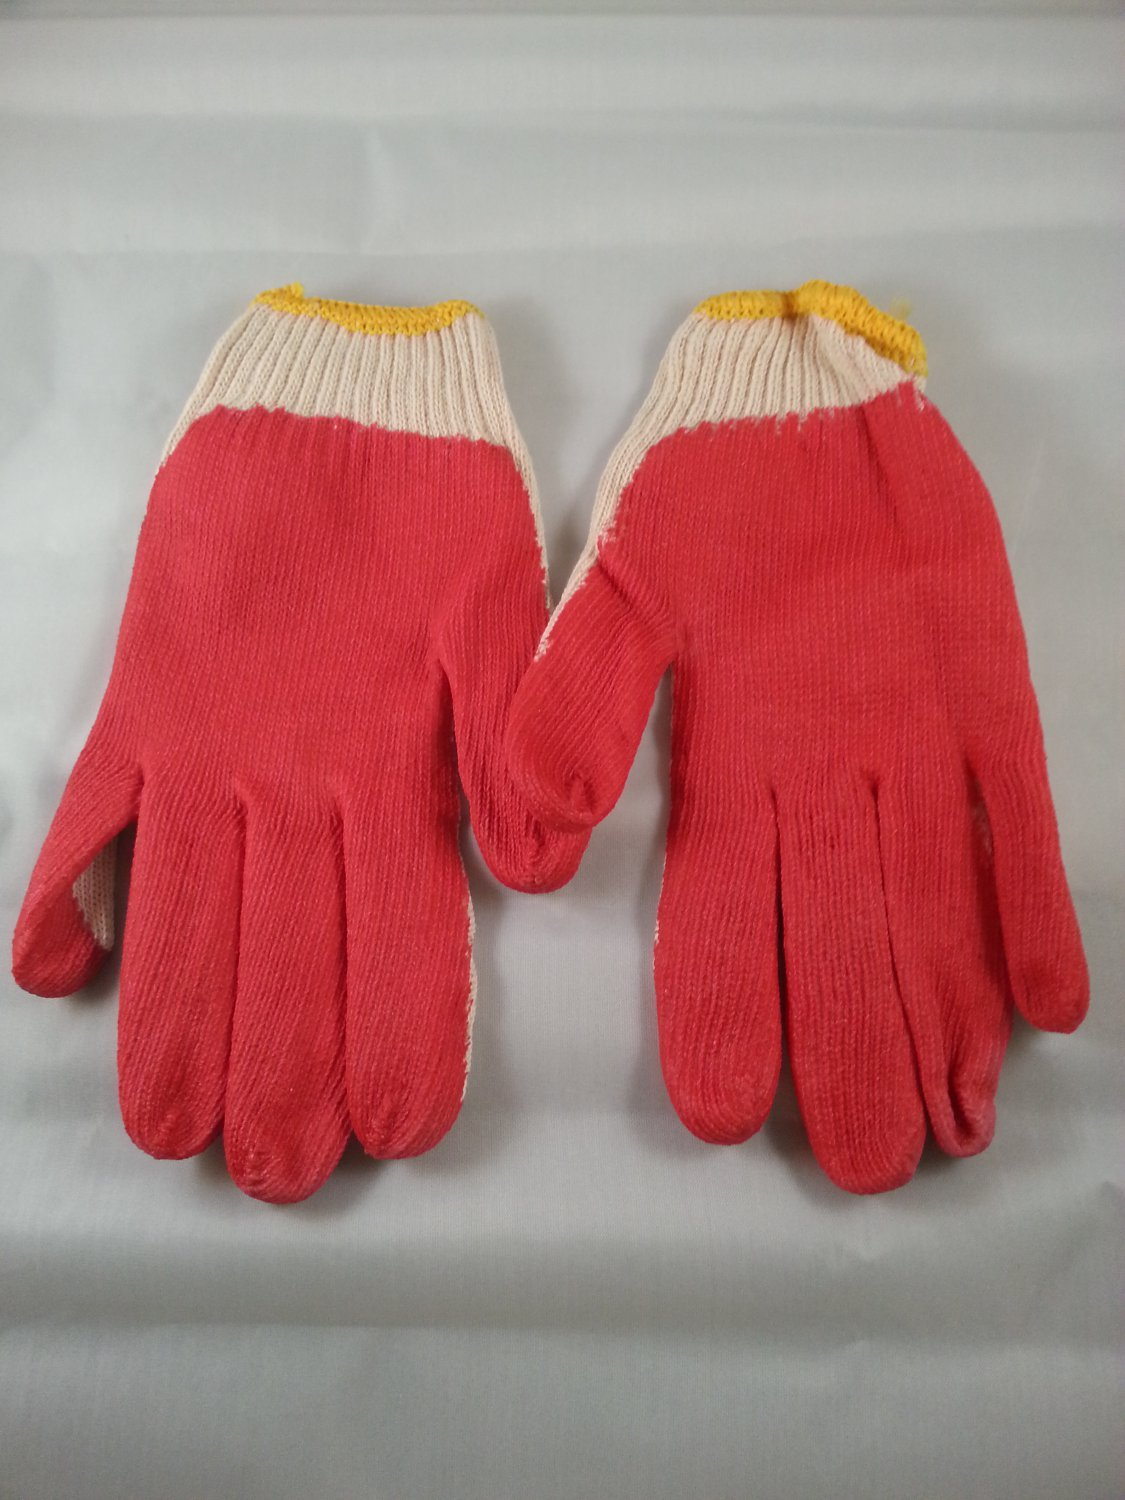 Lot Of 240 Pairs Premium Palm Coating Work Gloves One Size Fit All Free Shipping